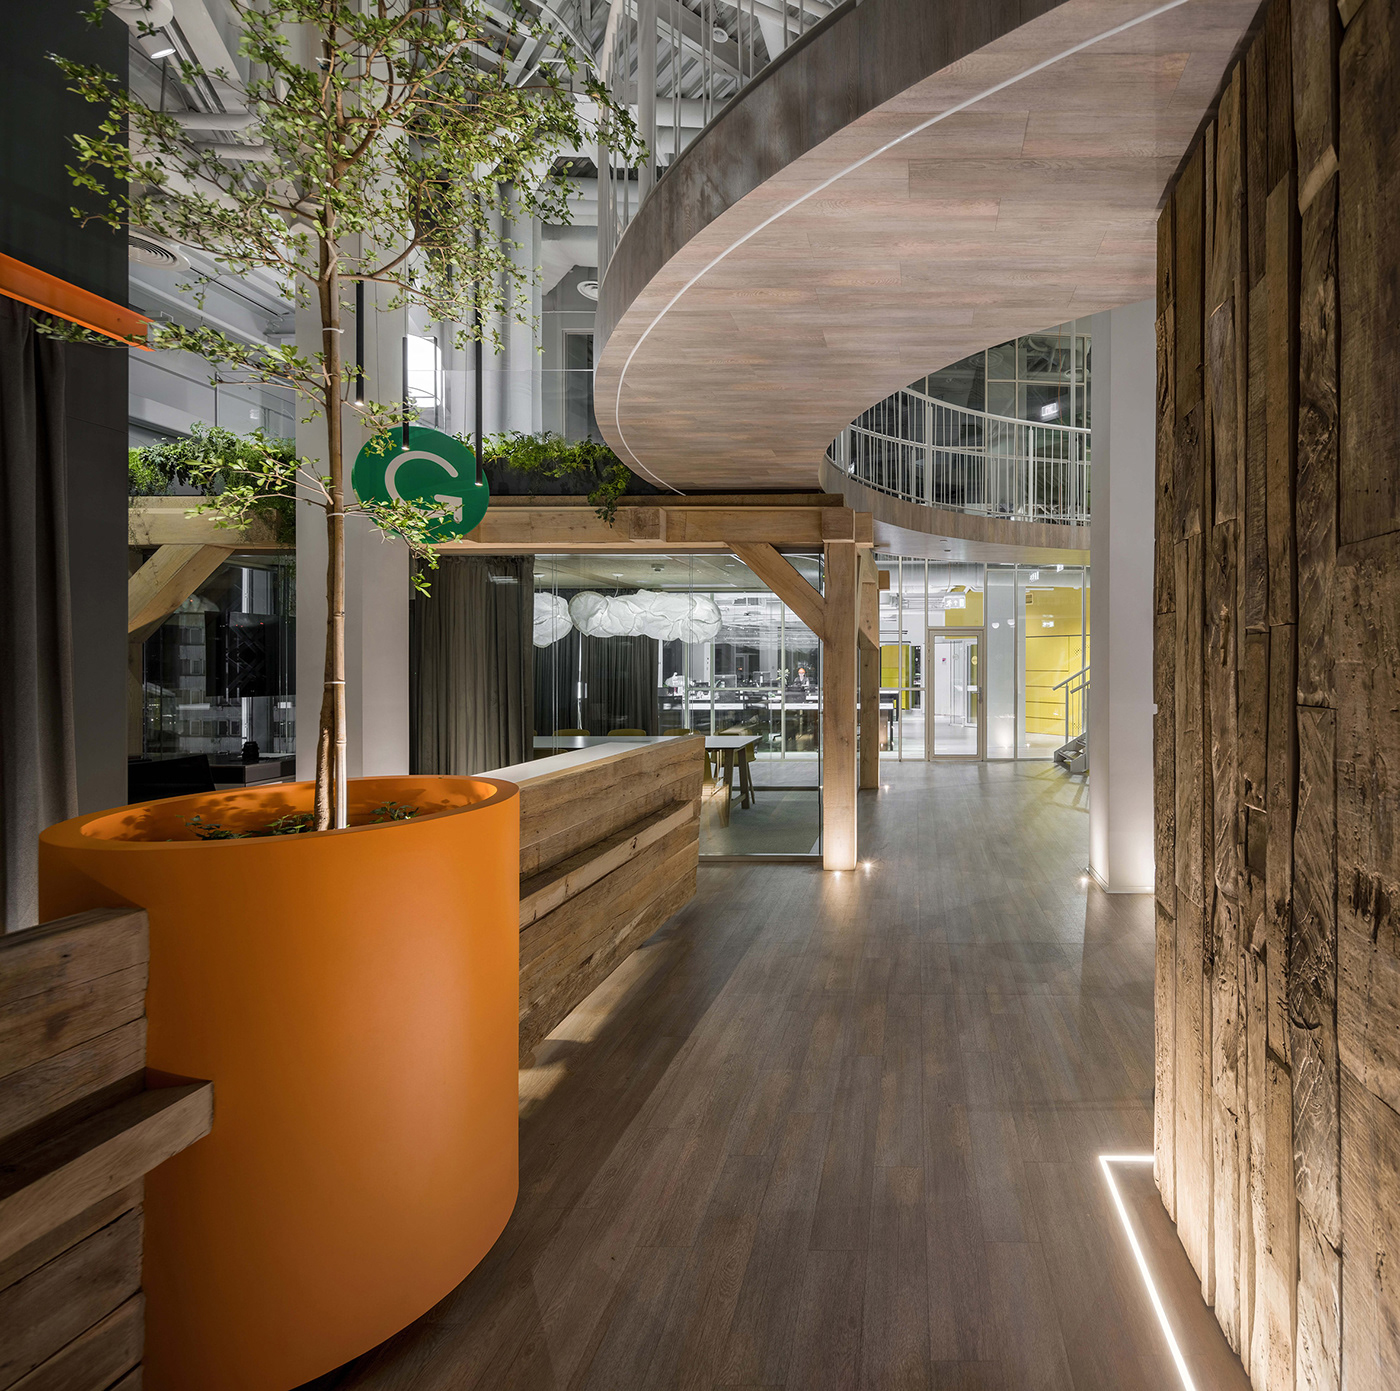 Office Office interior office architecture product design  meeting room lounge eco friendly Interior Architecture balbek grammarly